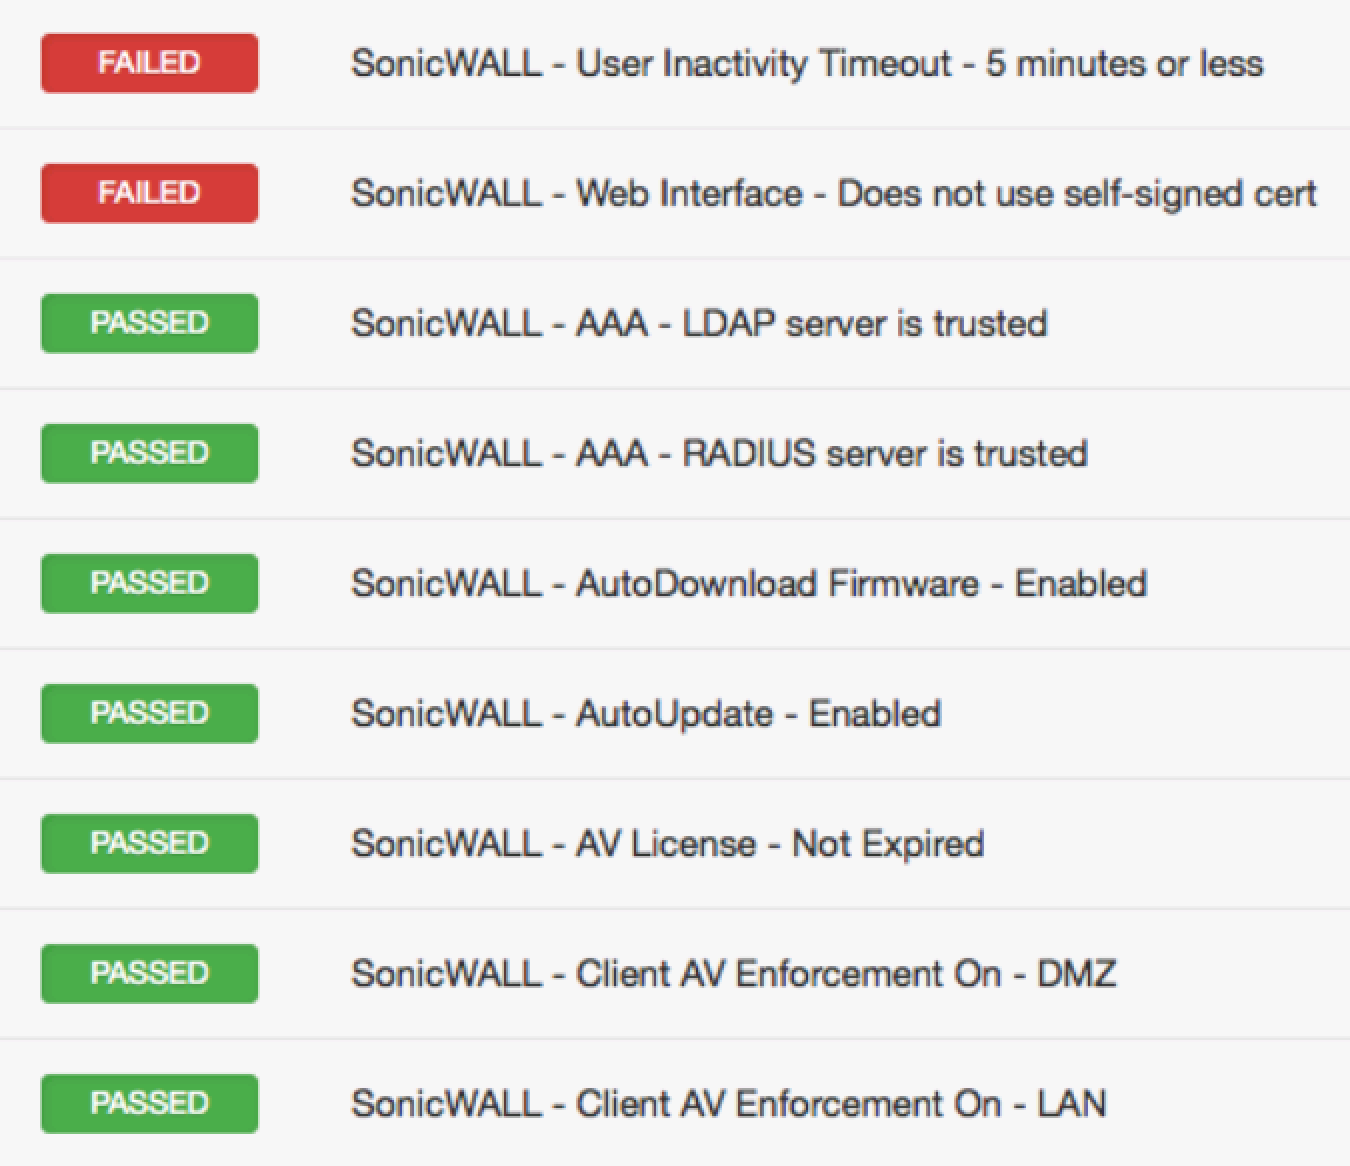 SonicWALL SonicOS Compliance File Reference (Nessus